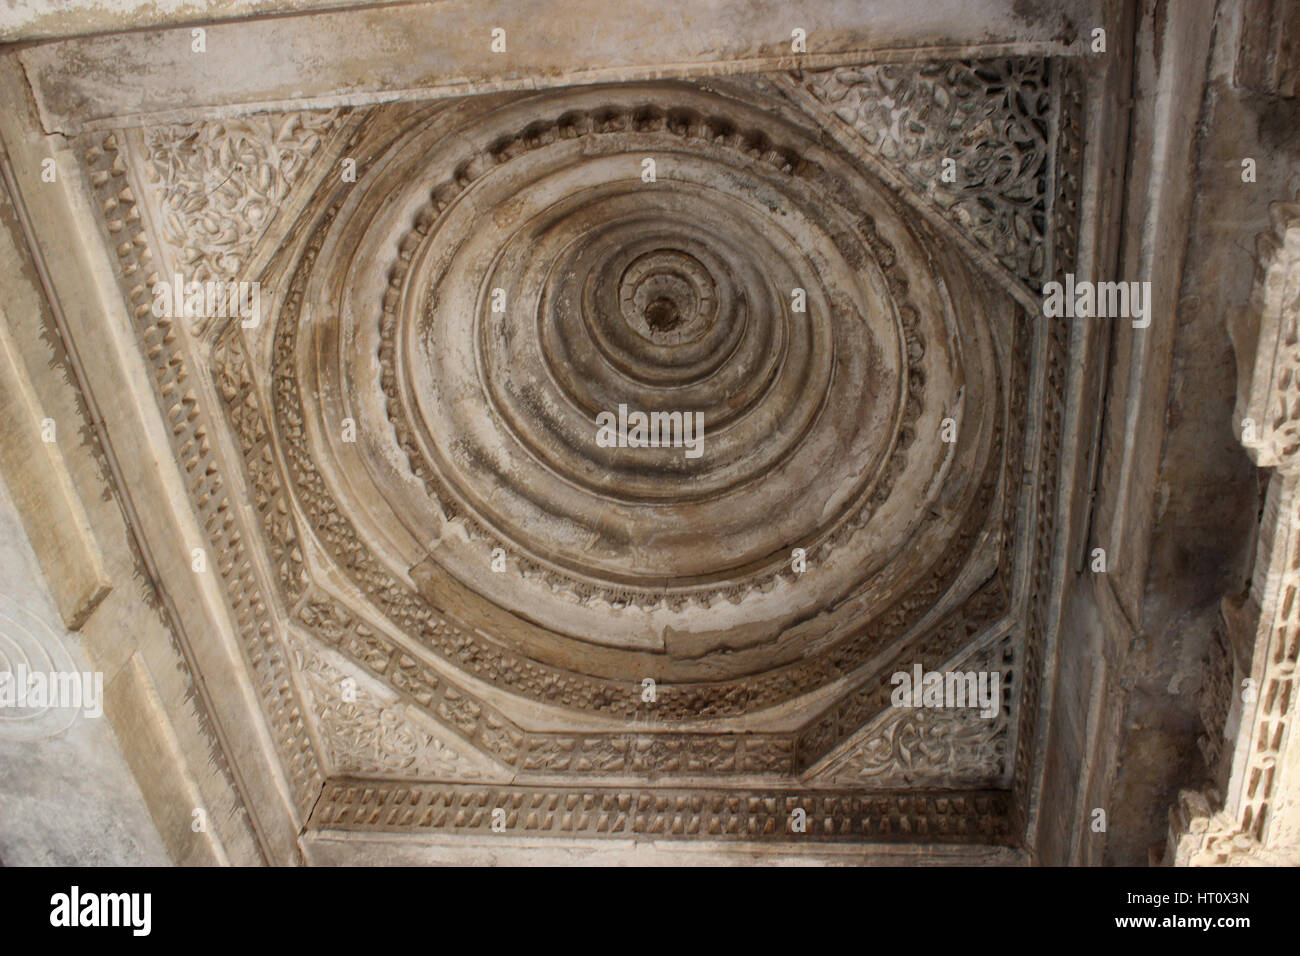 Dome ceiling at the Tombs of Mahmud Begada, and of his son Saltan Muzaffar ll. Sarkhej Roza, Ahmedabad, Gujarat - Stock Image